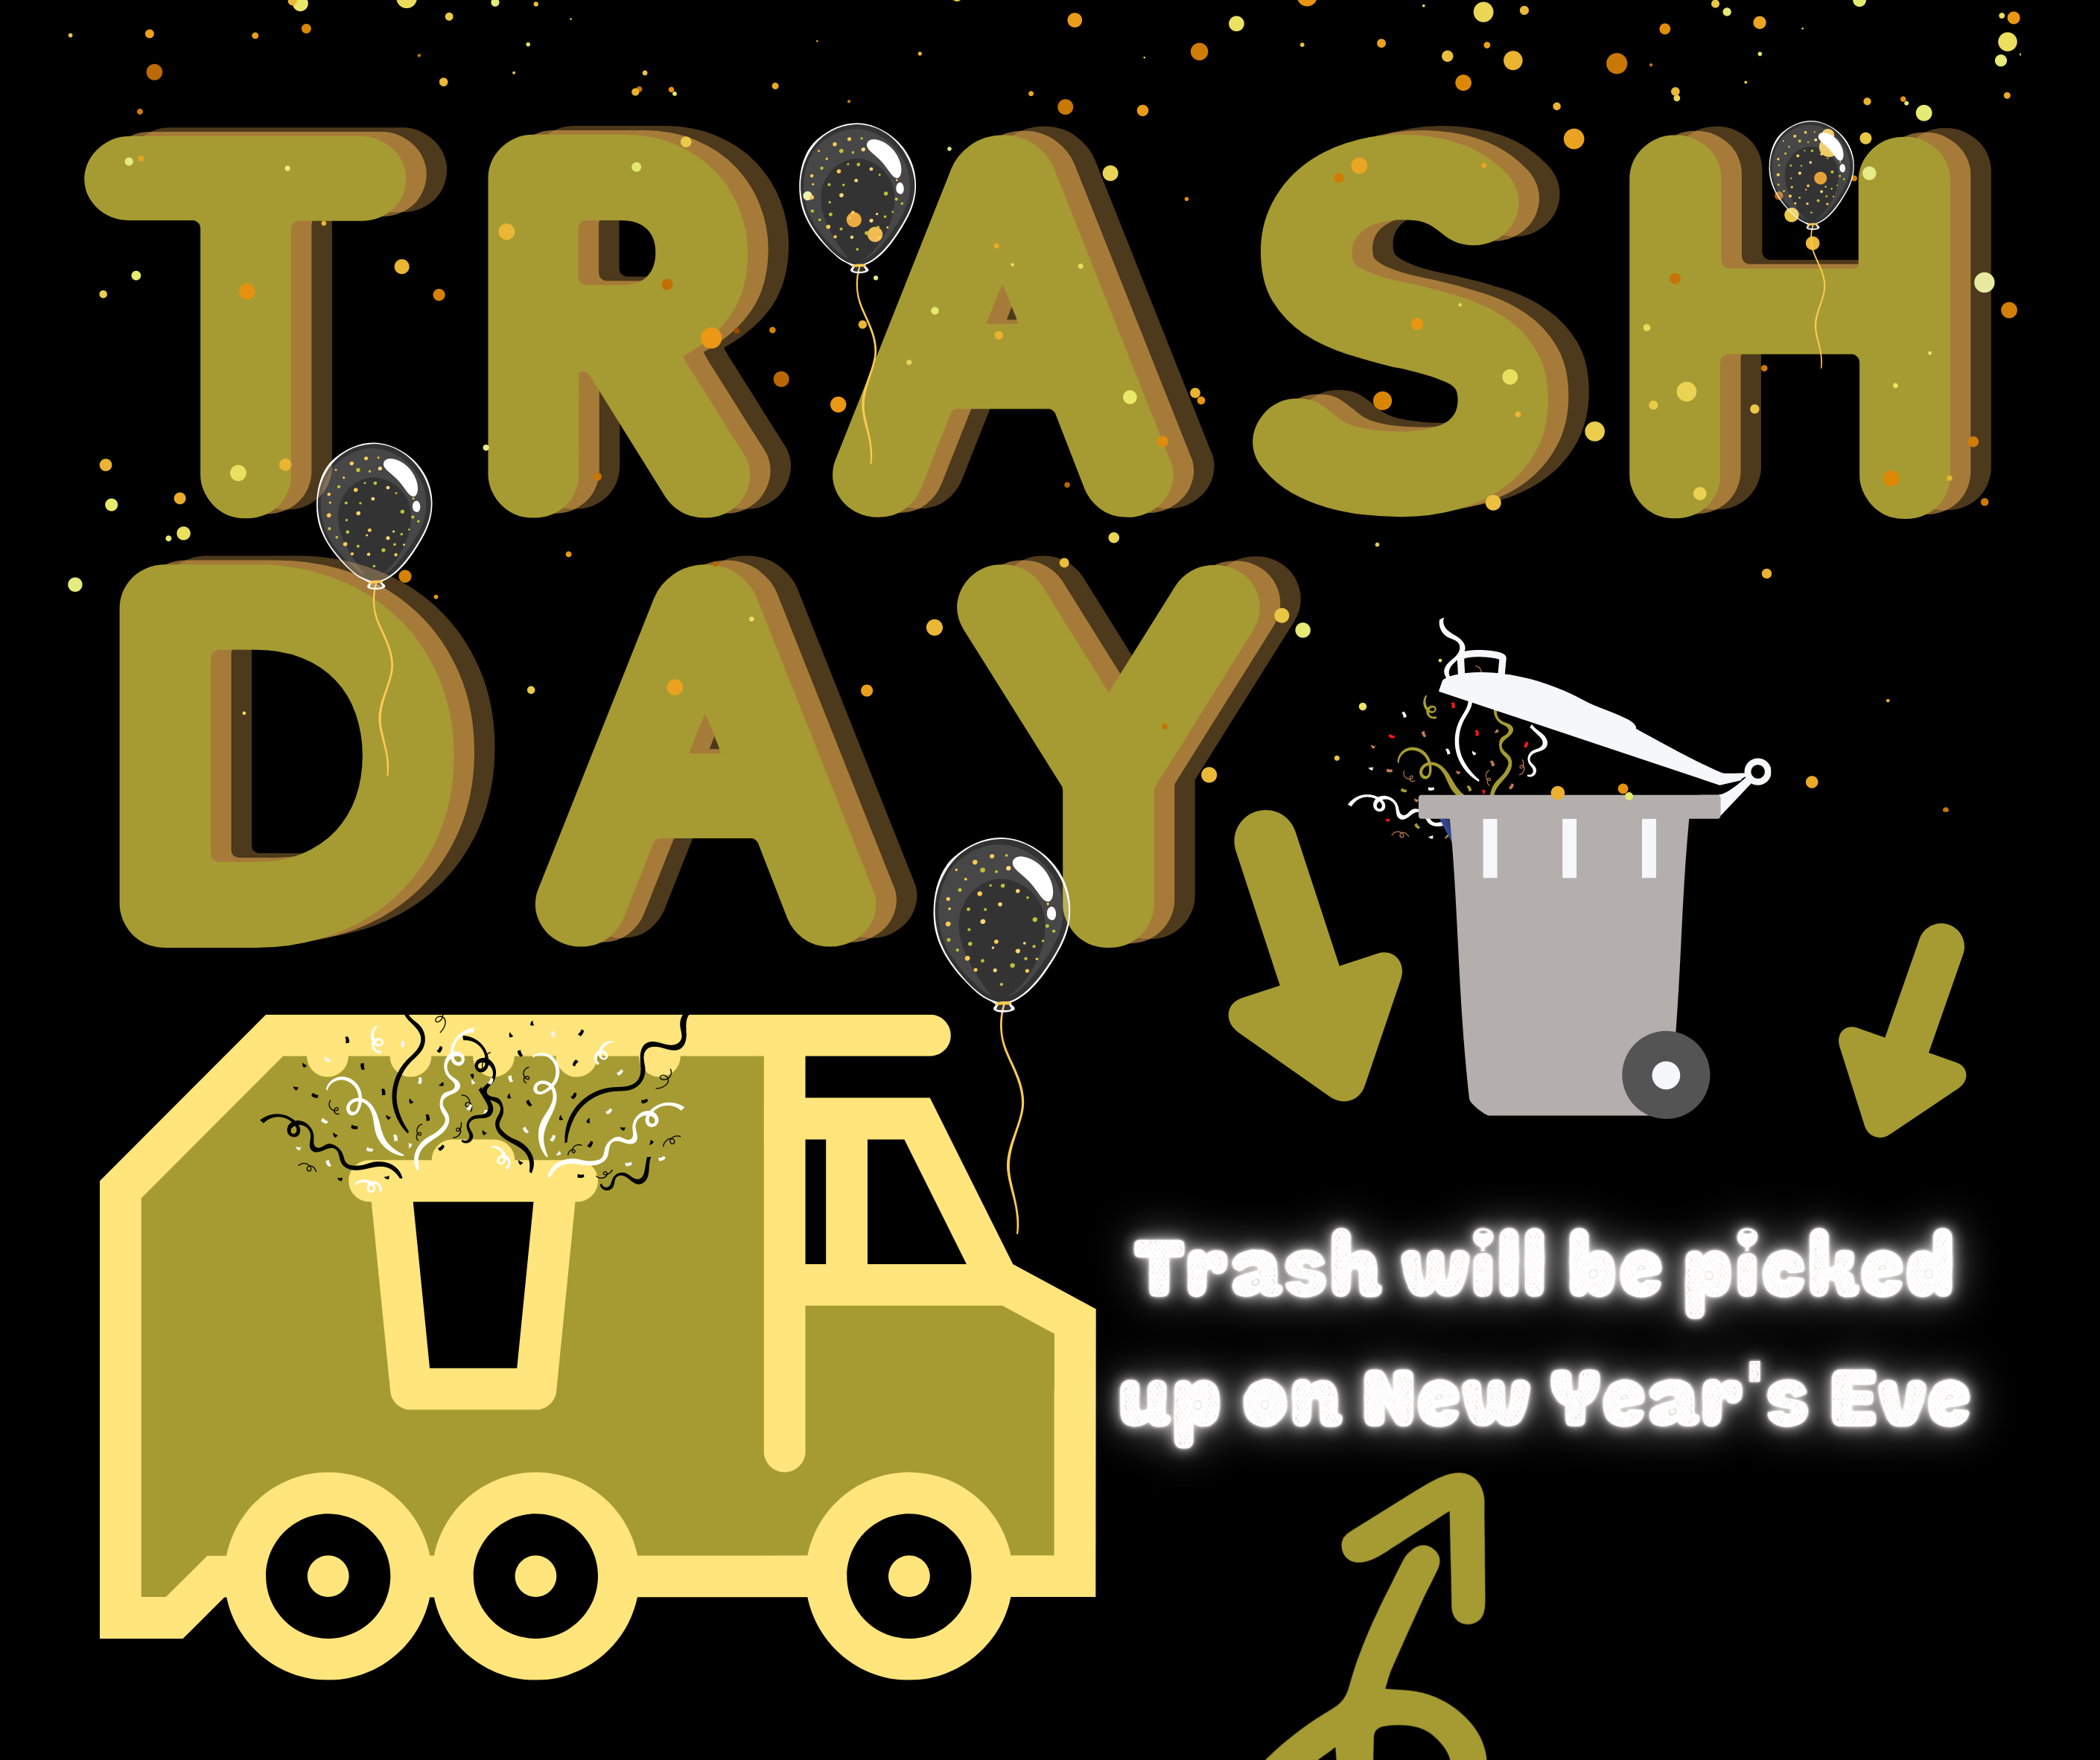 Trash will be picked up on New Year's Eve